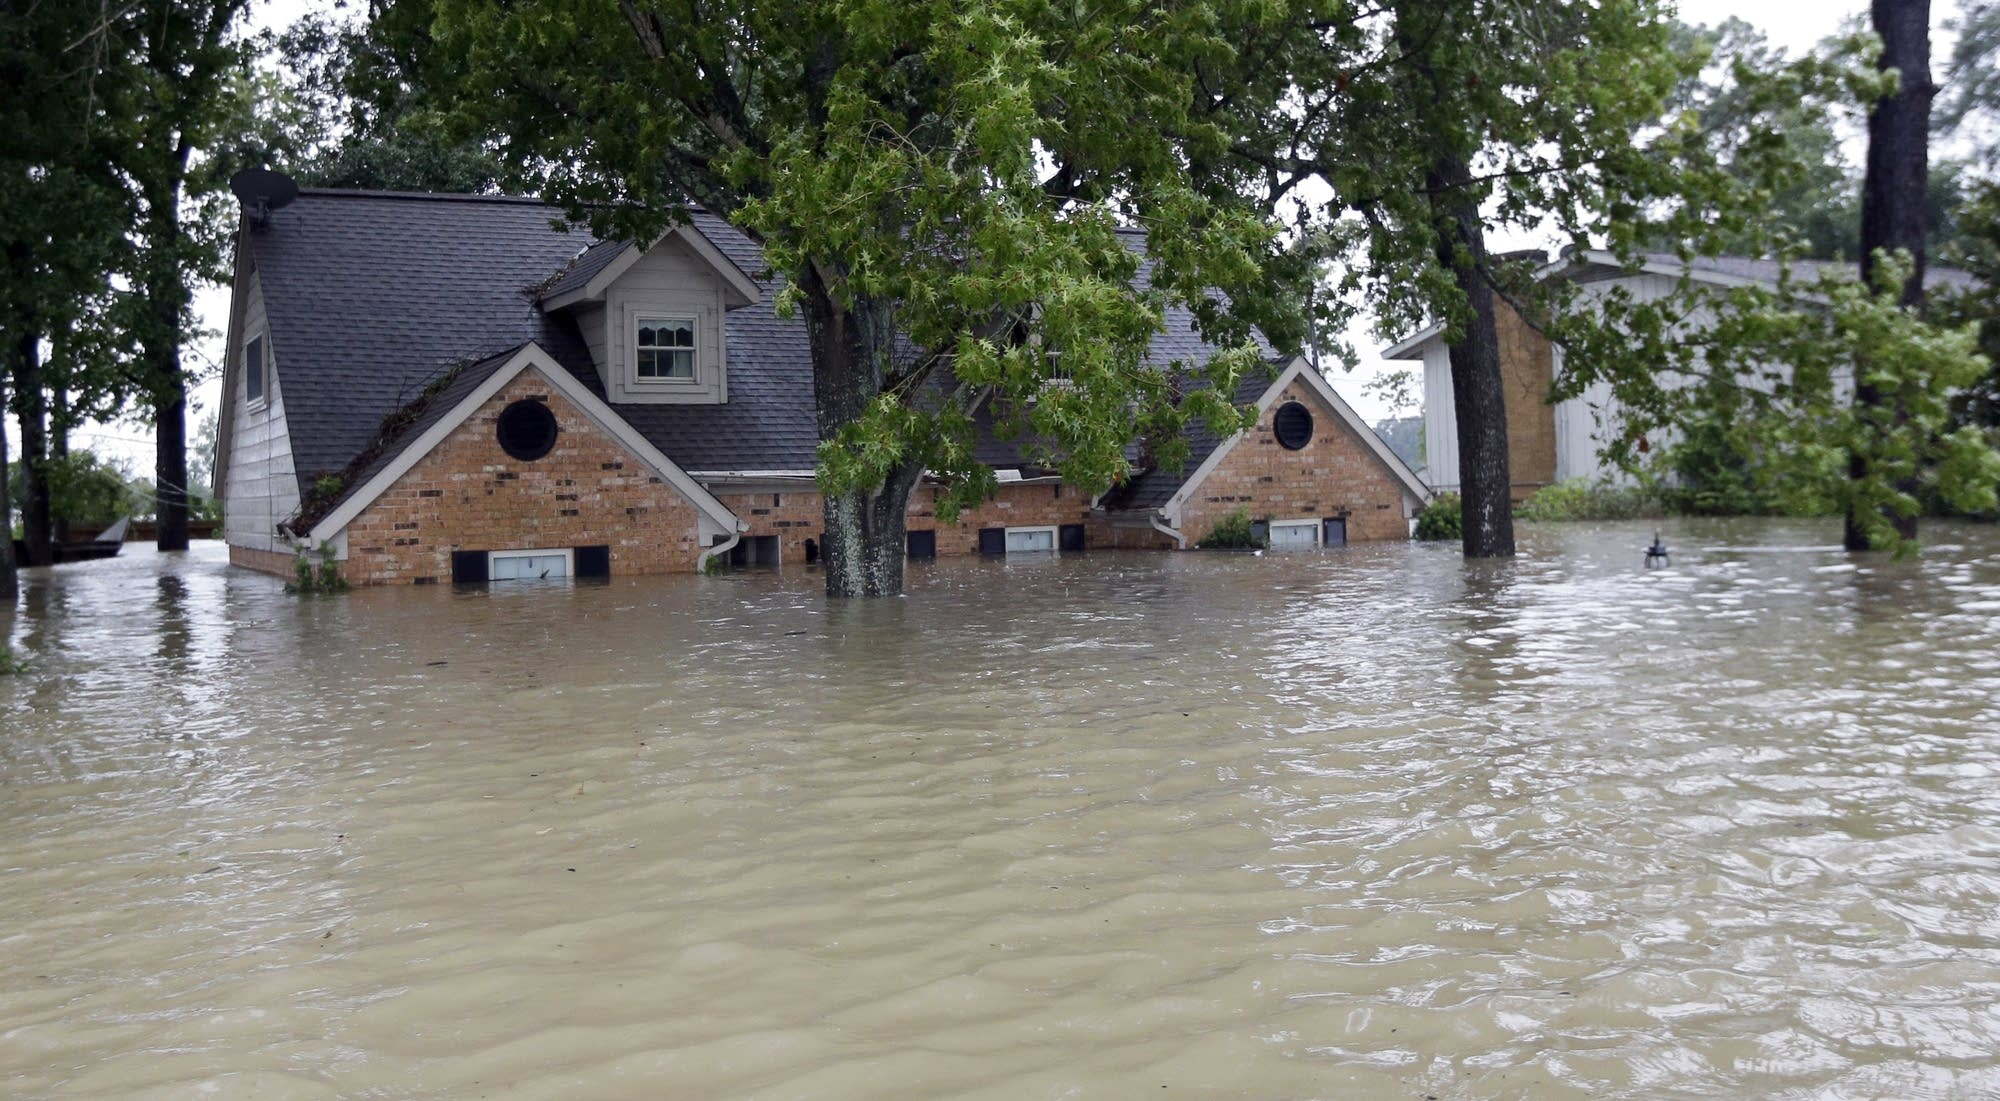 Most Harvey flood victims uninsured, face big bills alone ...